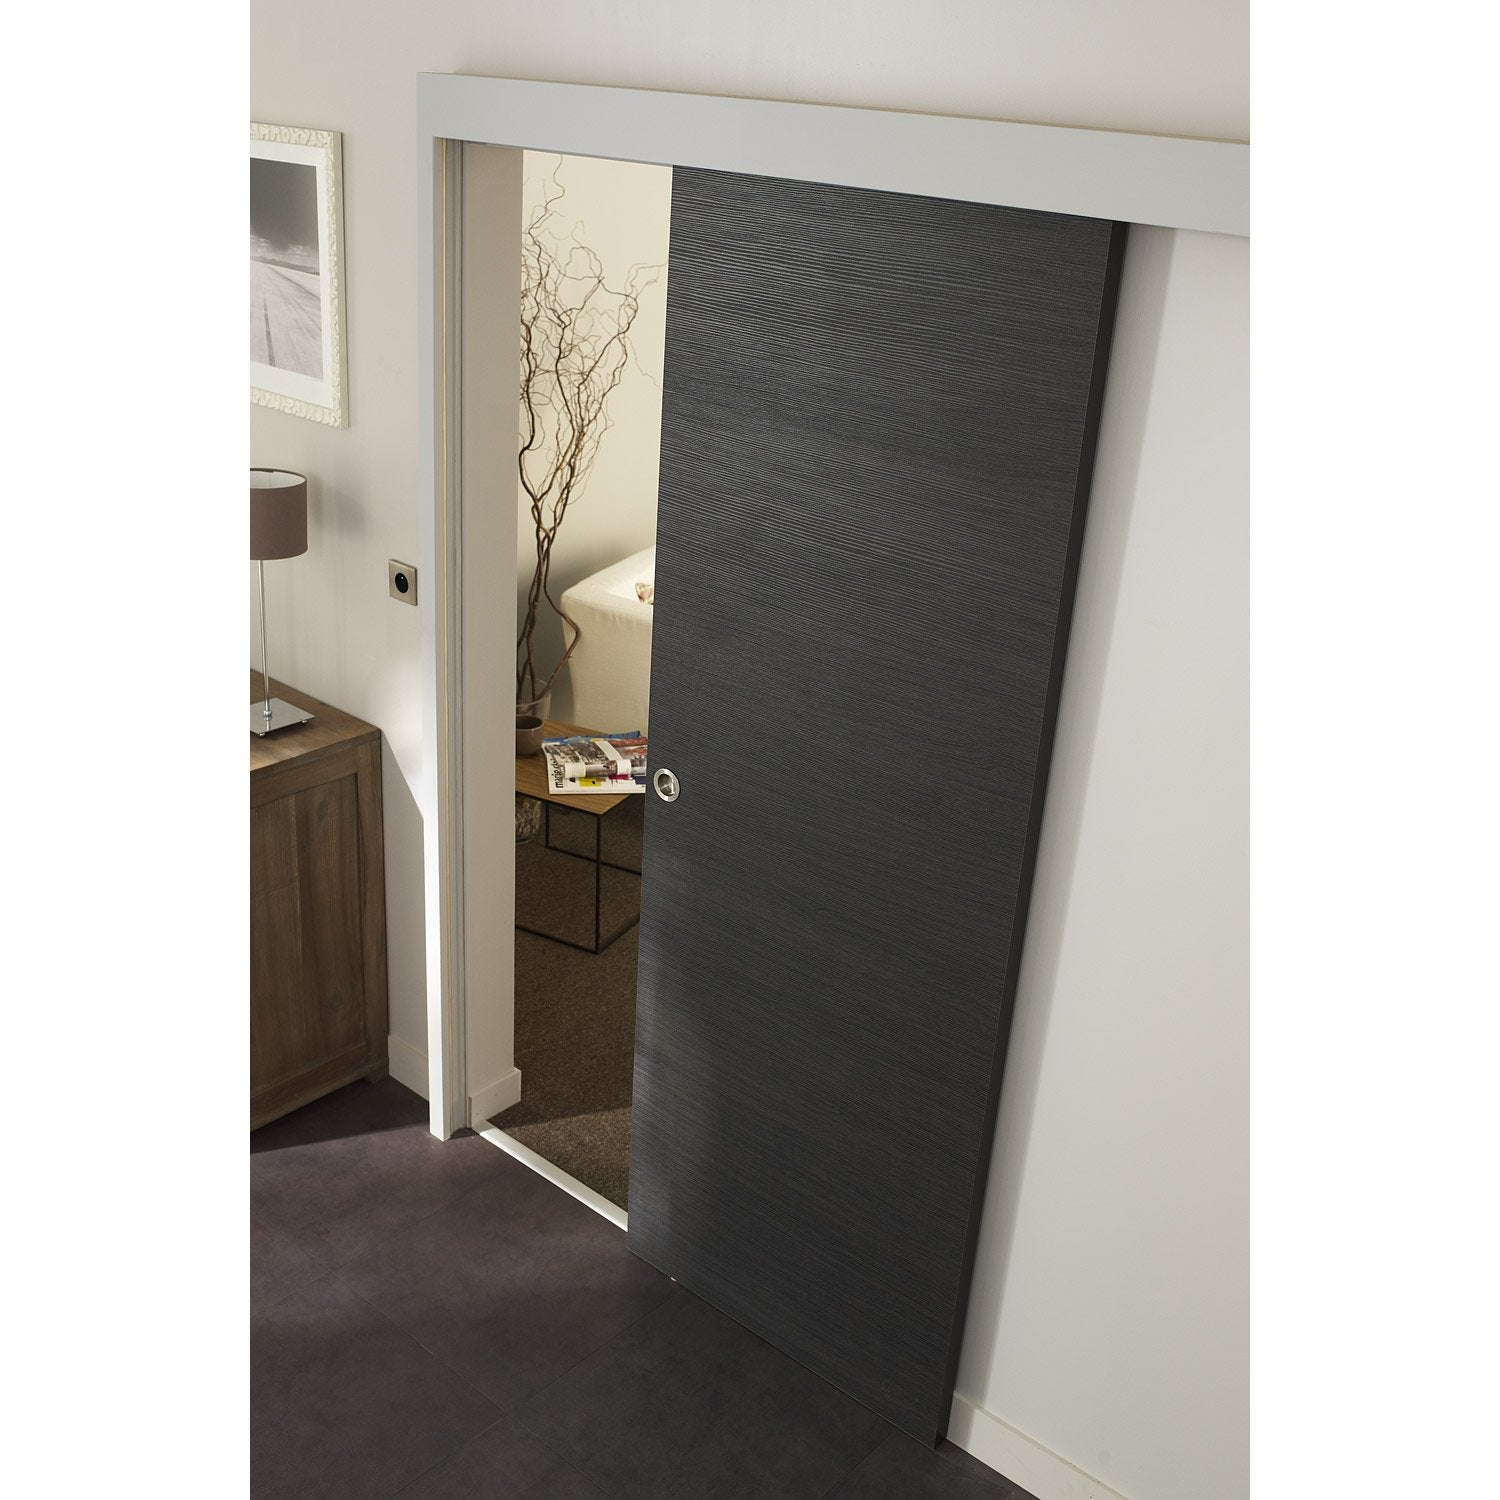 Ensemble porte coulissante londres mdf rev tu avec le rail jazz 2 en aluminiu - Habillage porte interieur leroy merlin ...